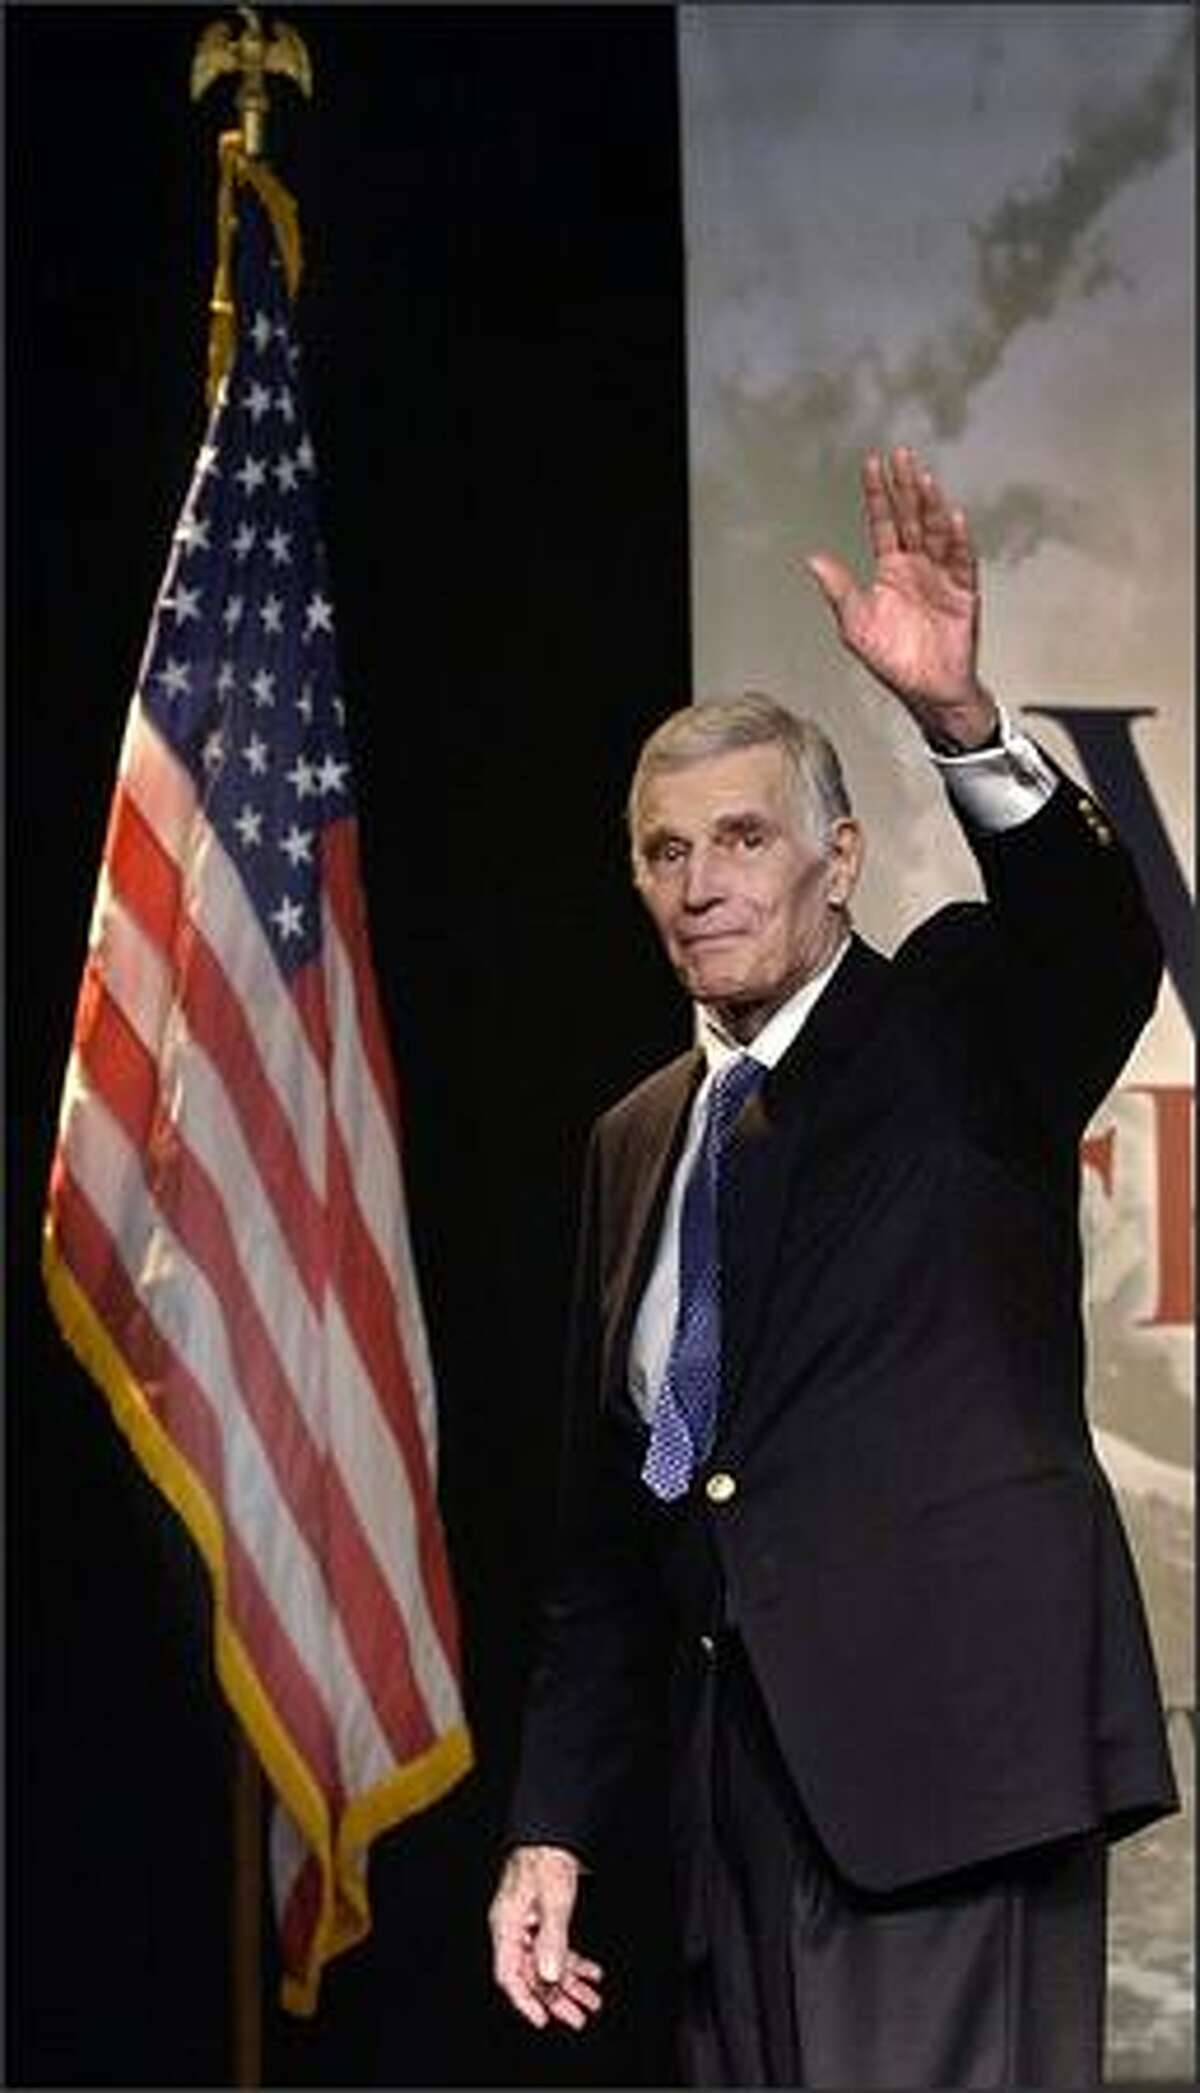 National Rifle Association President Charlton Heston waves on stage during an NRA Rally in Oklahoma City, Okla., on Oct. 31, 2002.